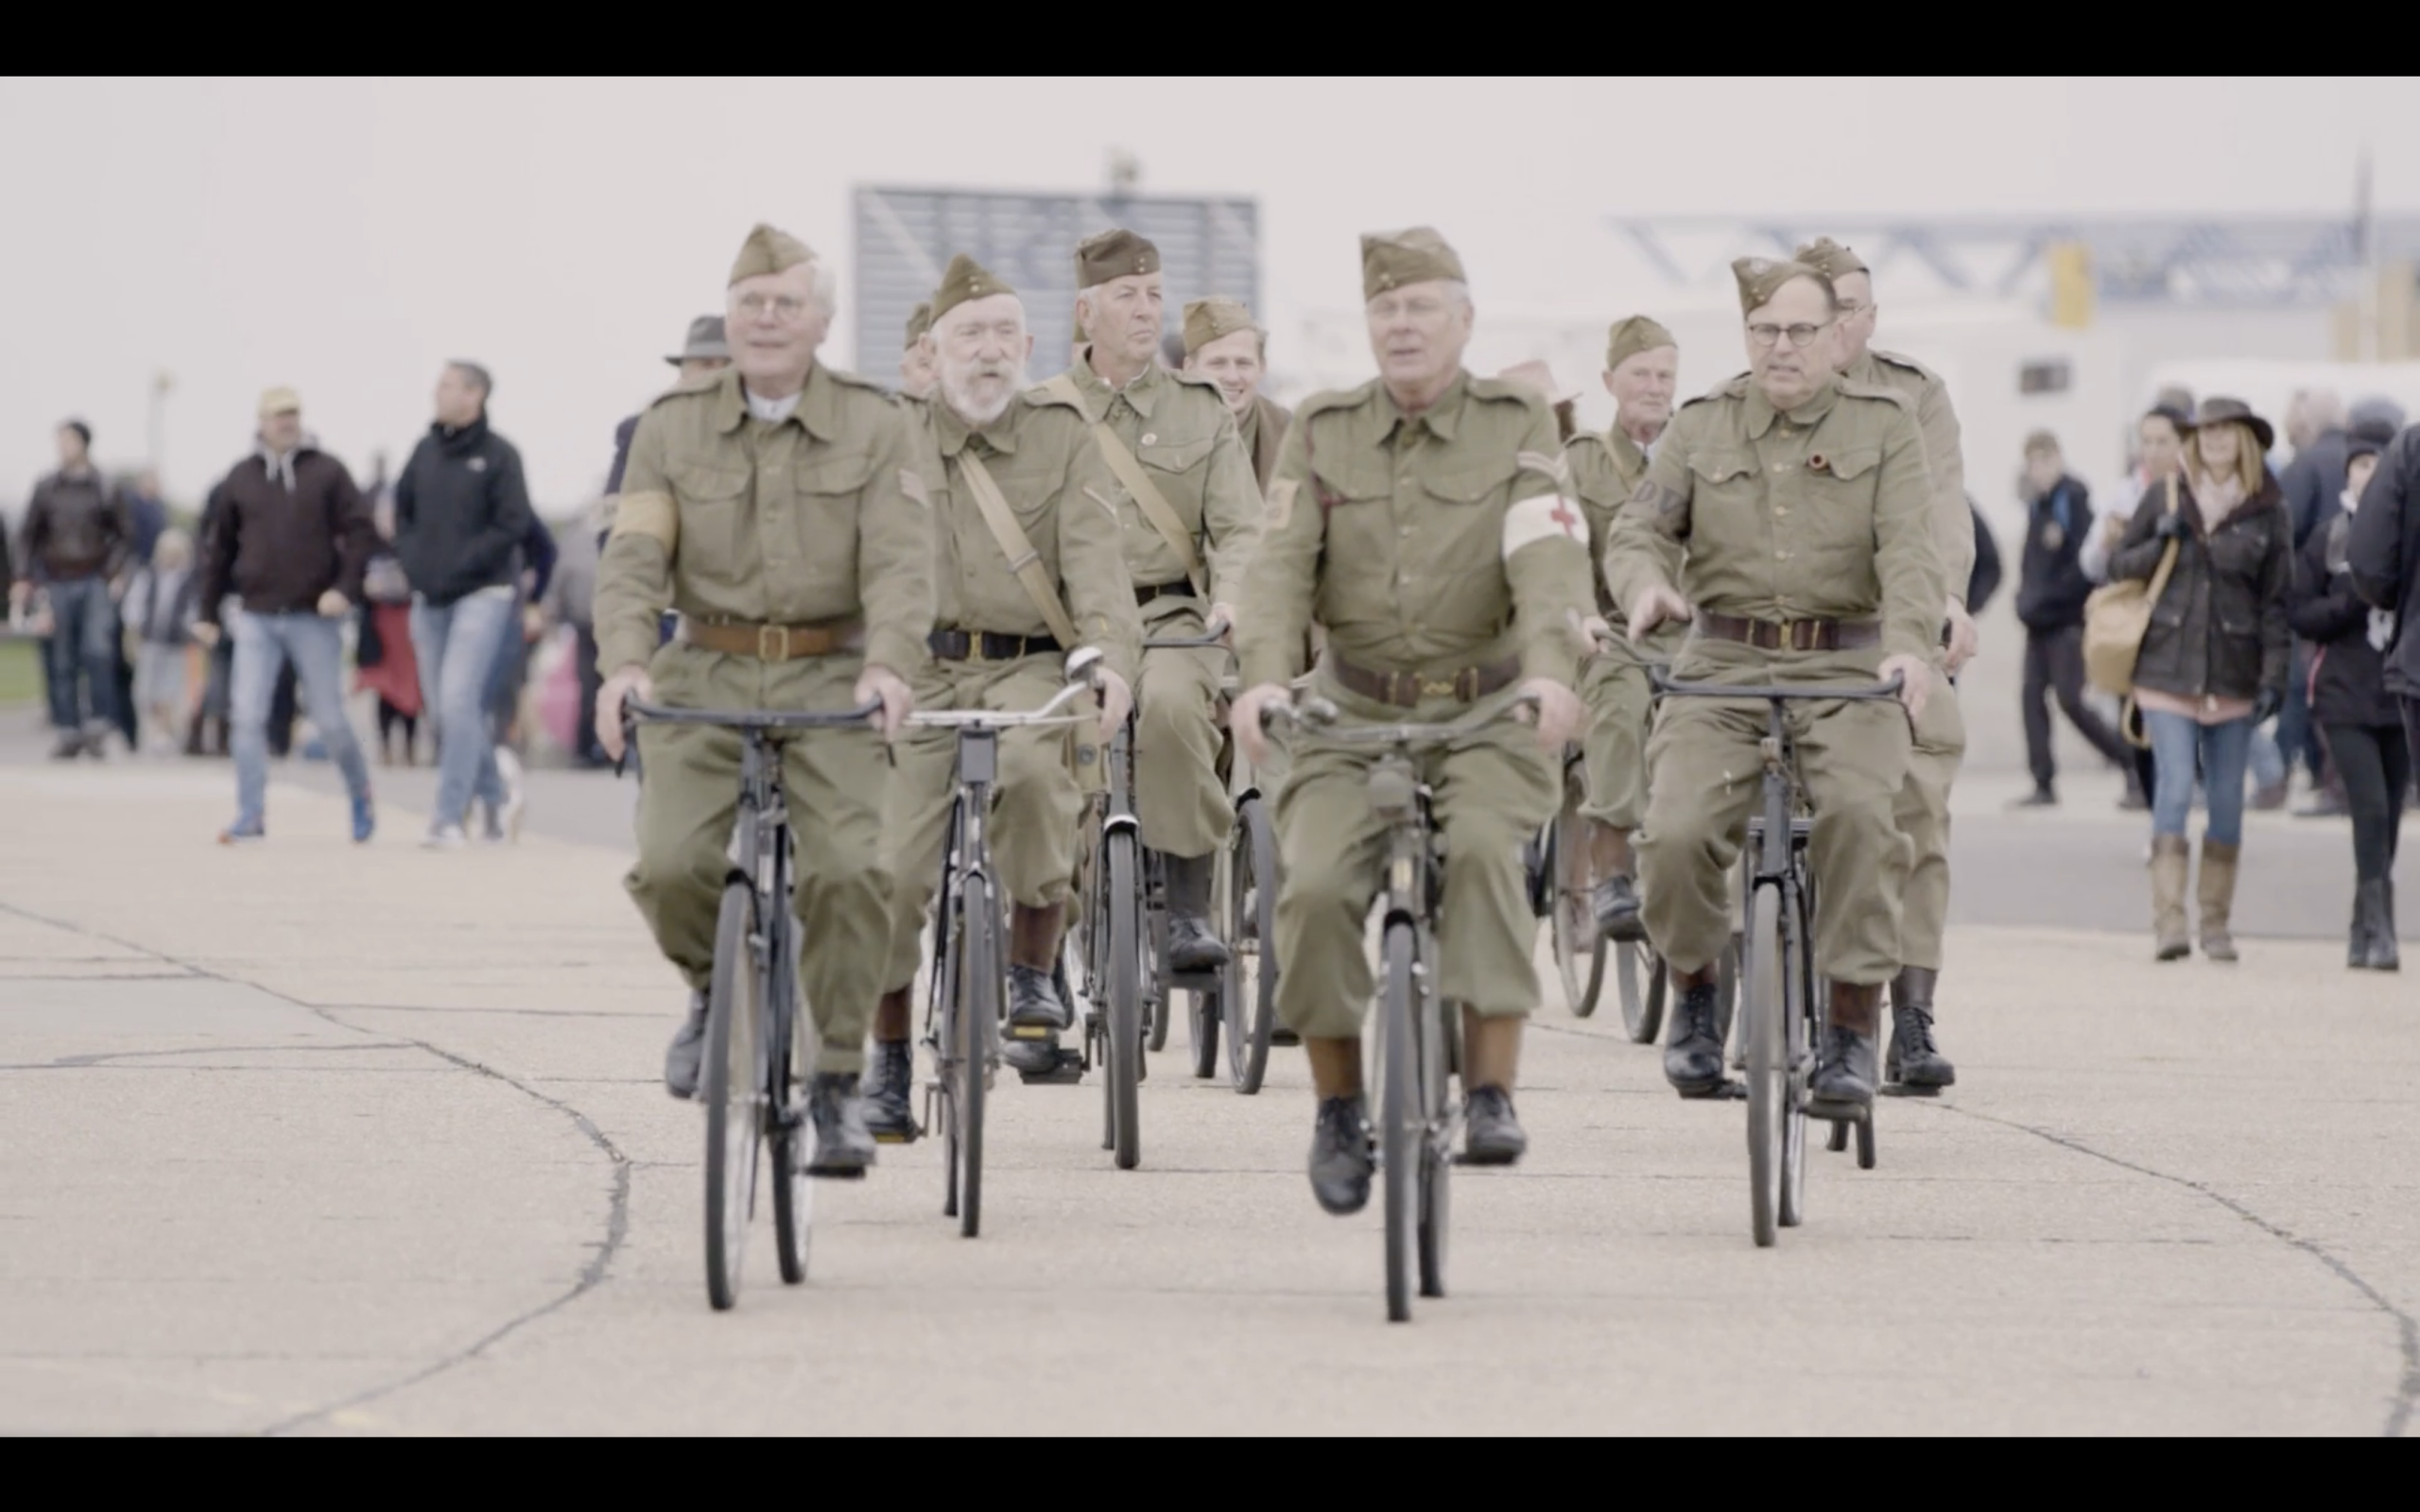 battle of Britain - group of people on bikes